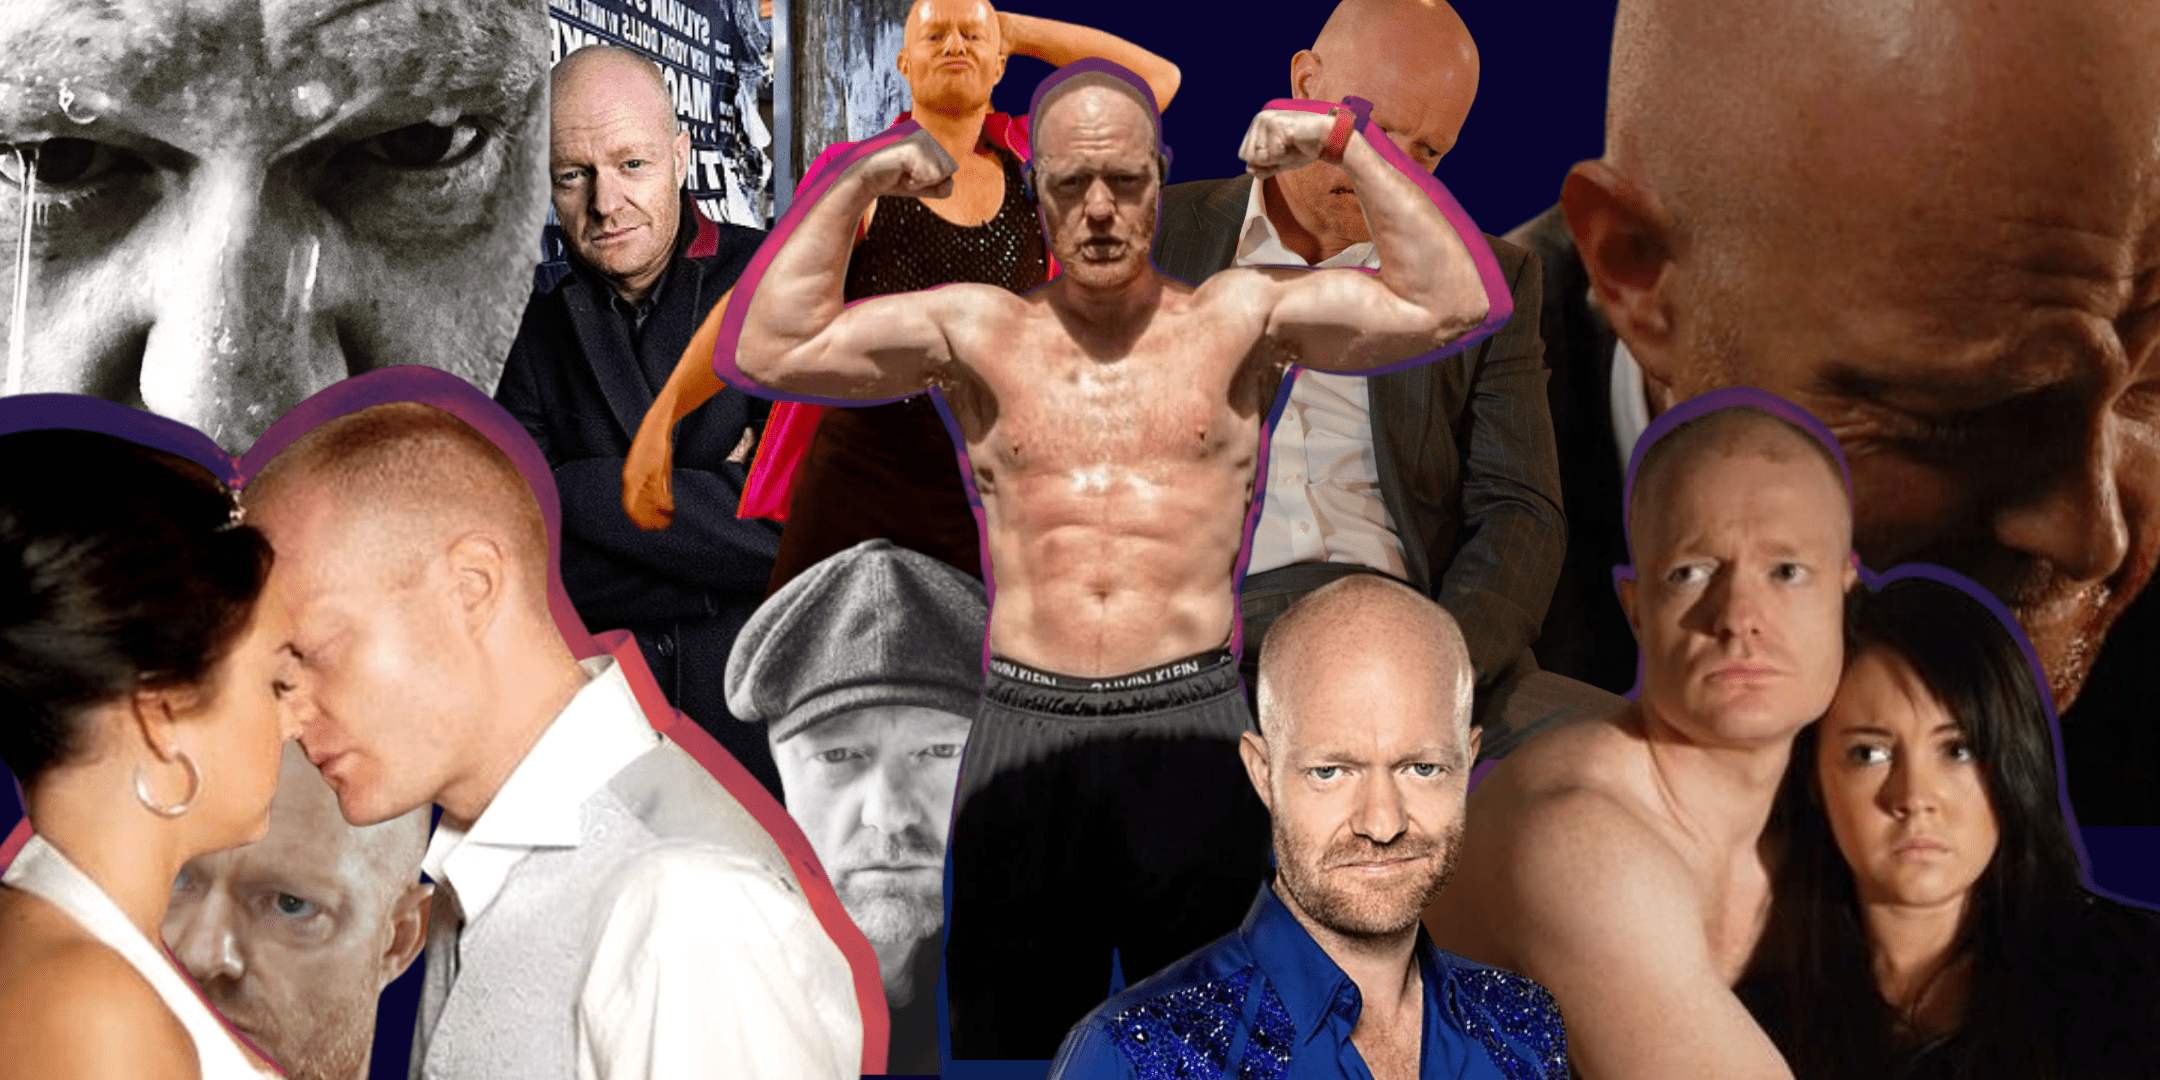 We finally asked black women who thirst for Max Branning… why?